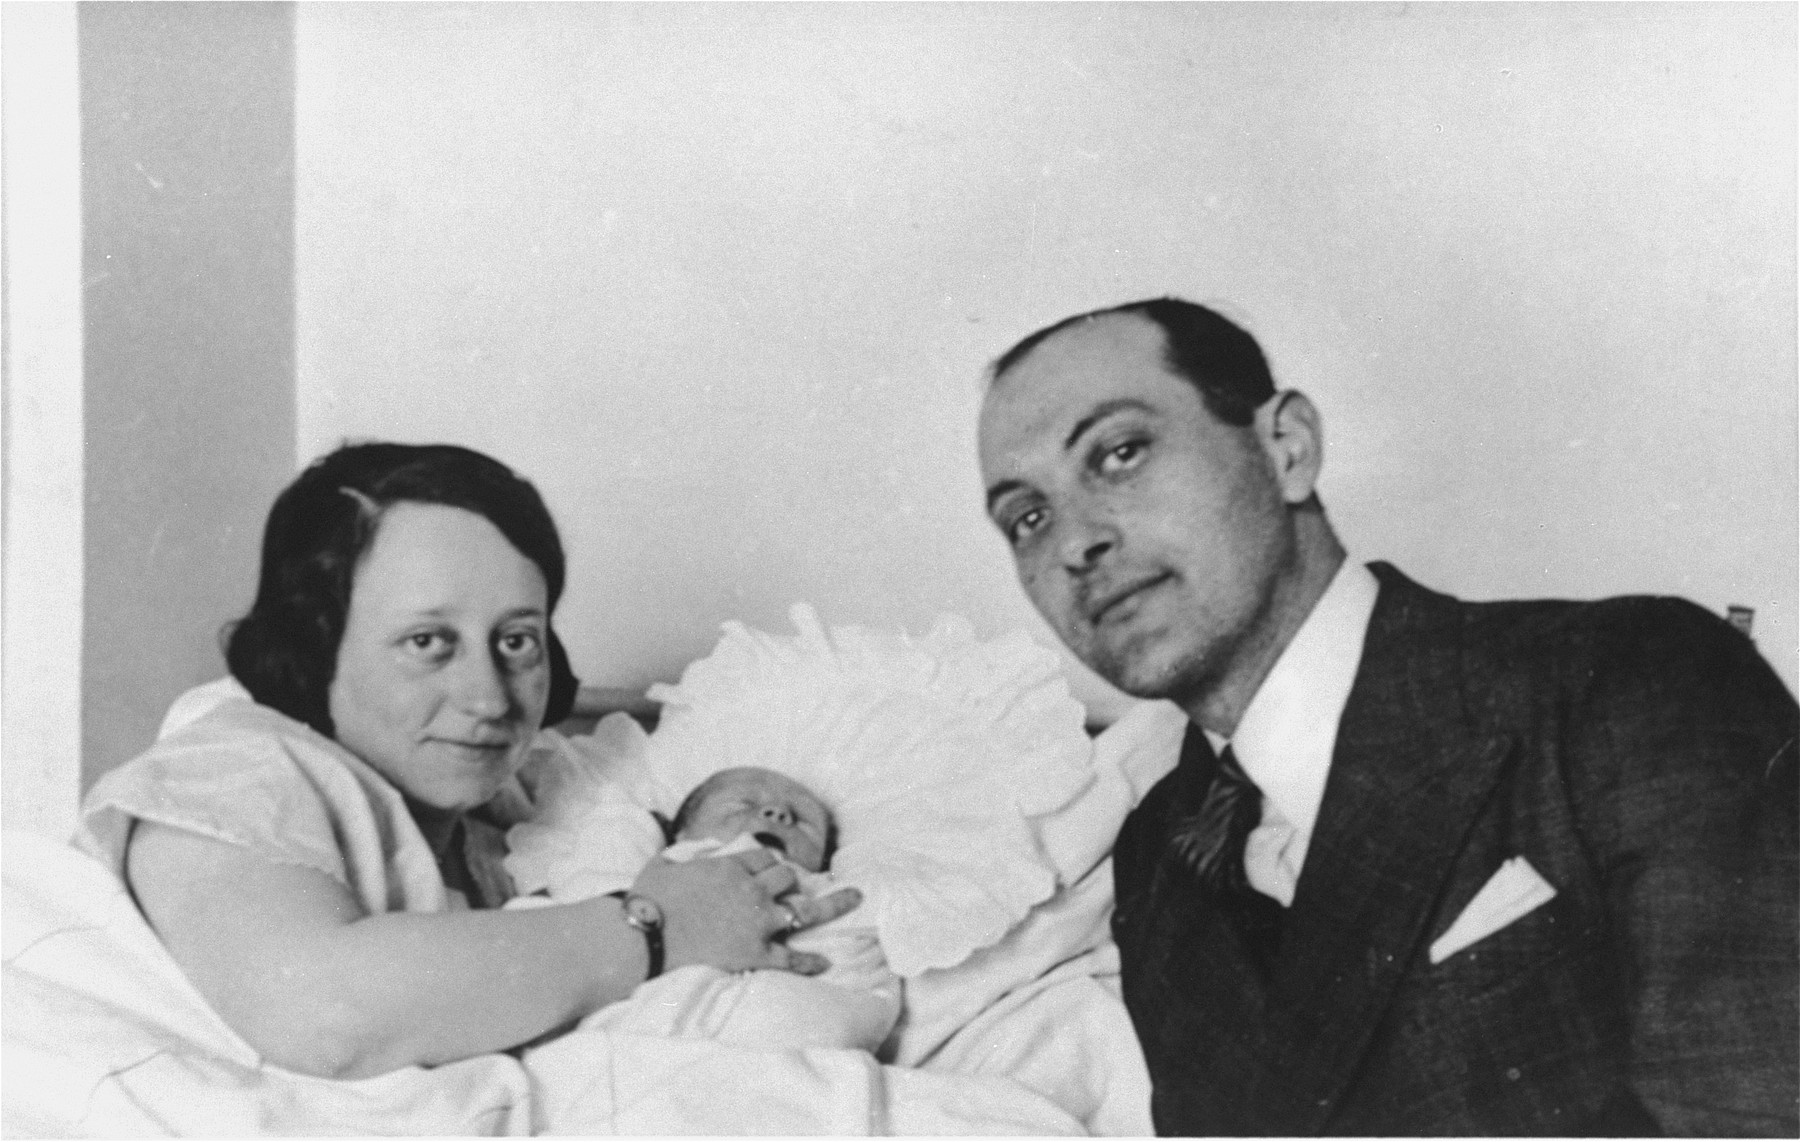 Istvan and Margit Pick with their newborn son, Gyorgy, in Budapest.